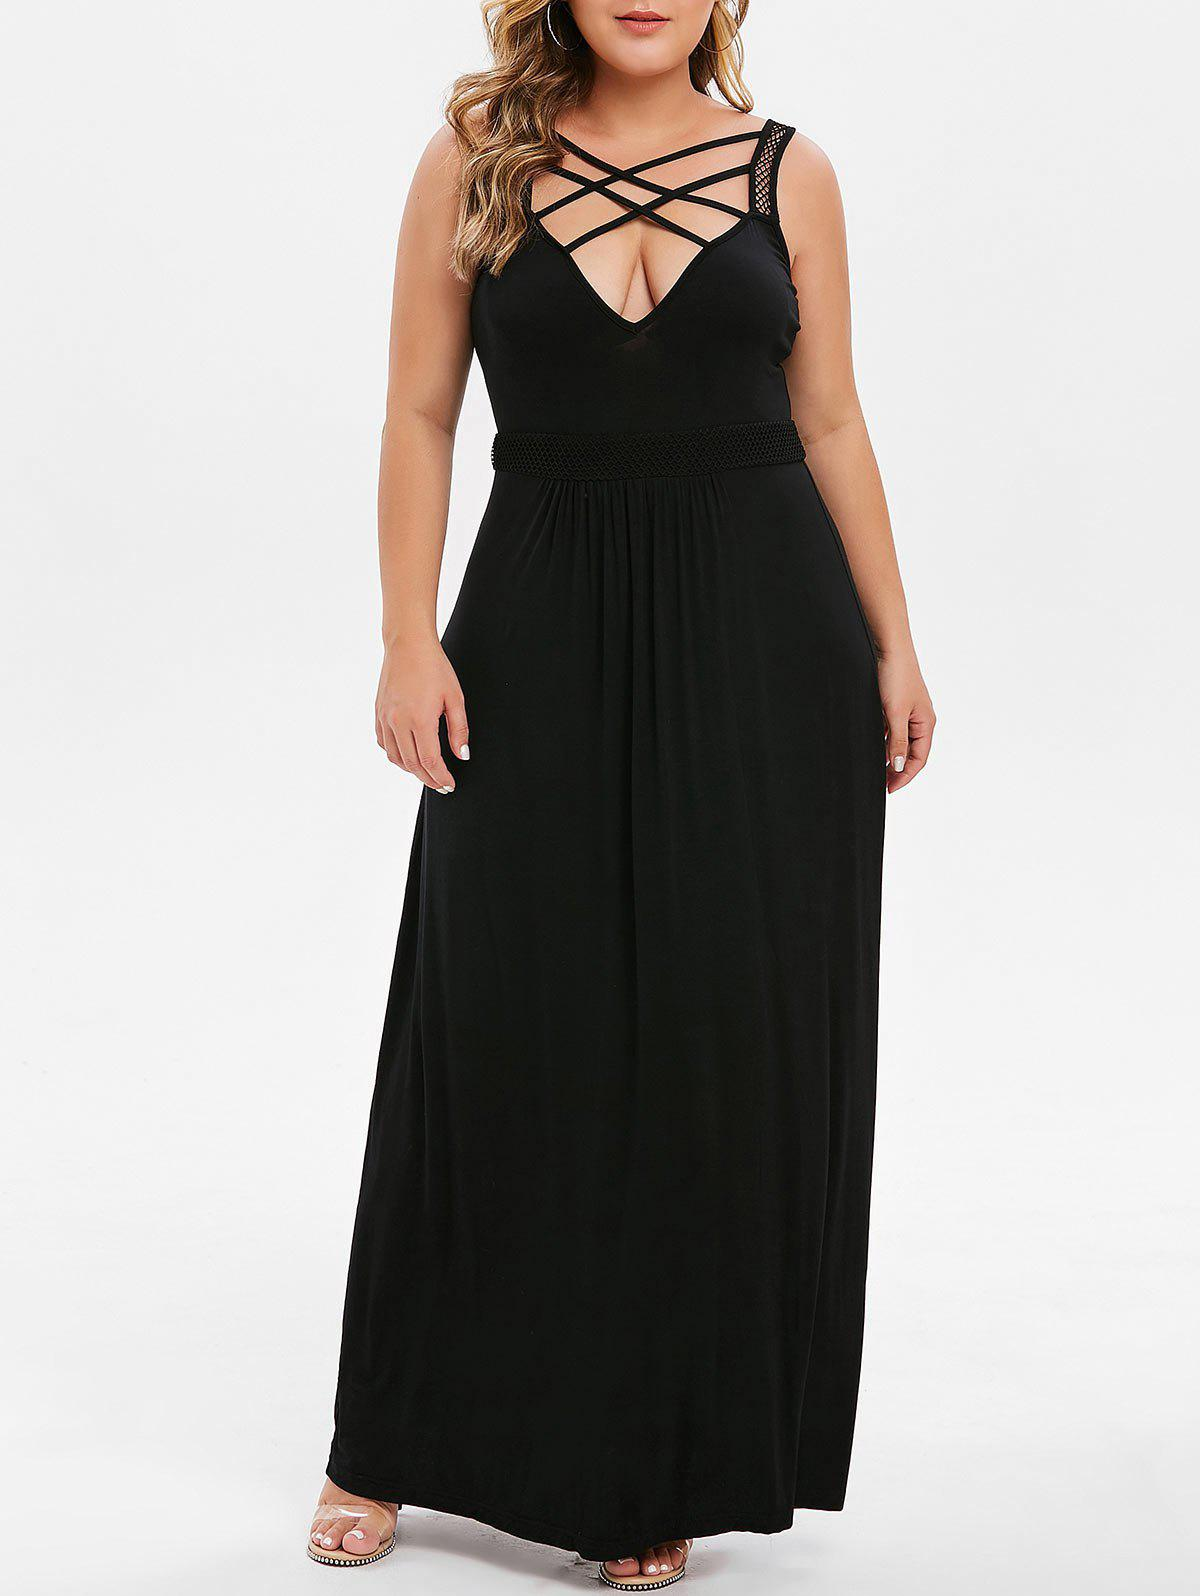 50% OFF] Plus Size Plunging Neckline Criss Cross Maxi Dress | Rosegal